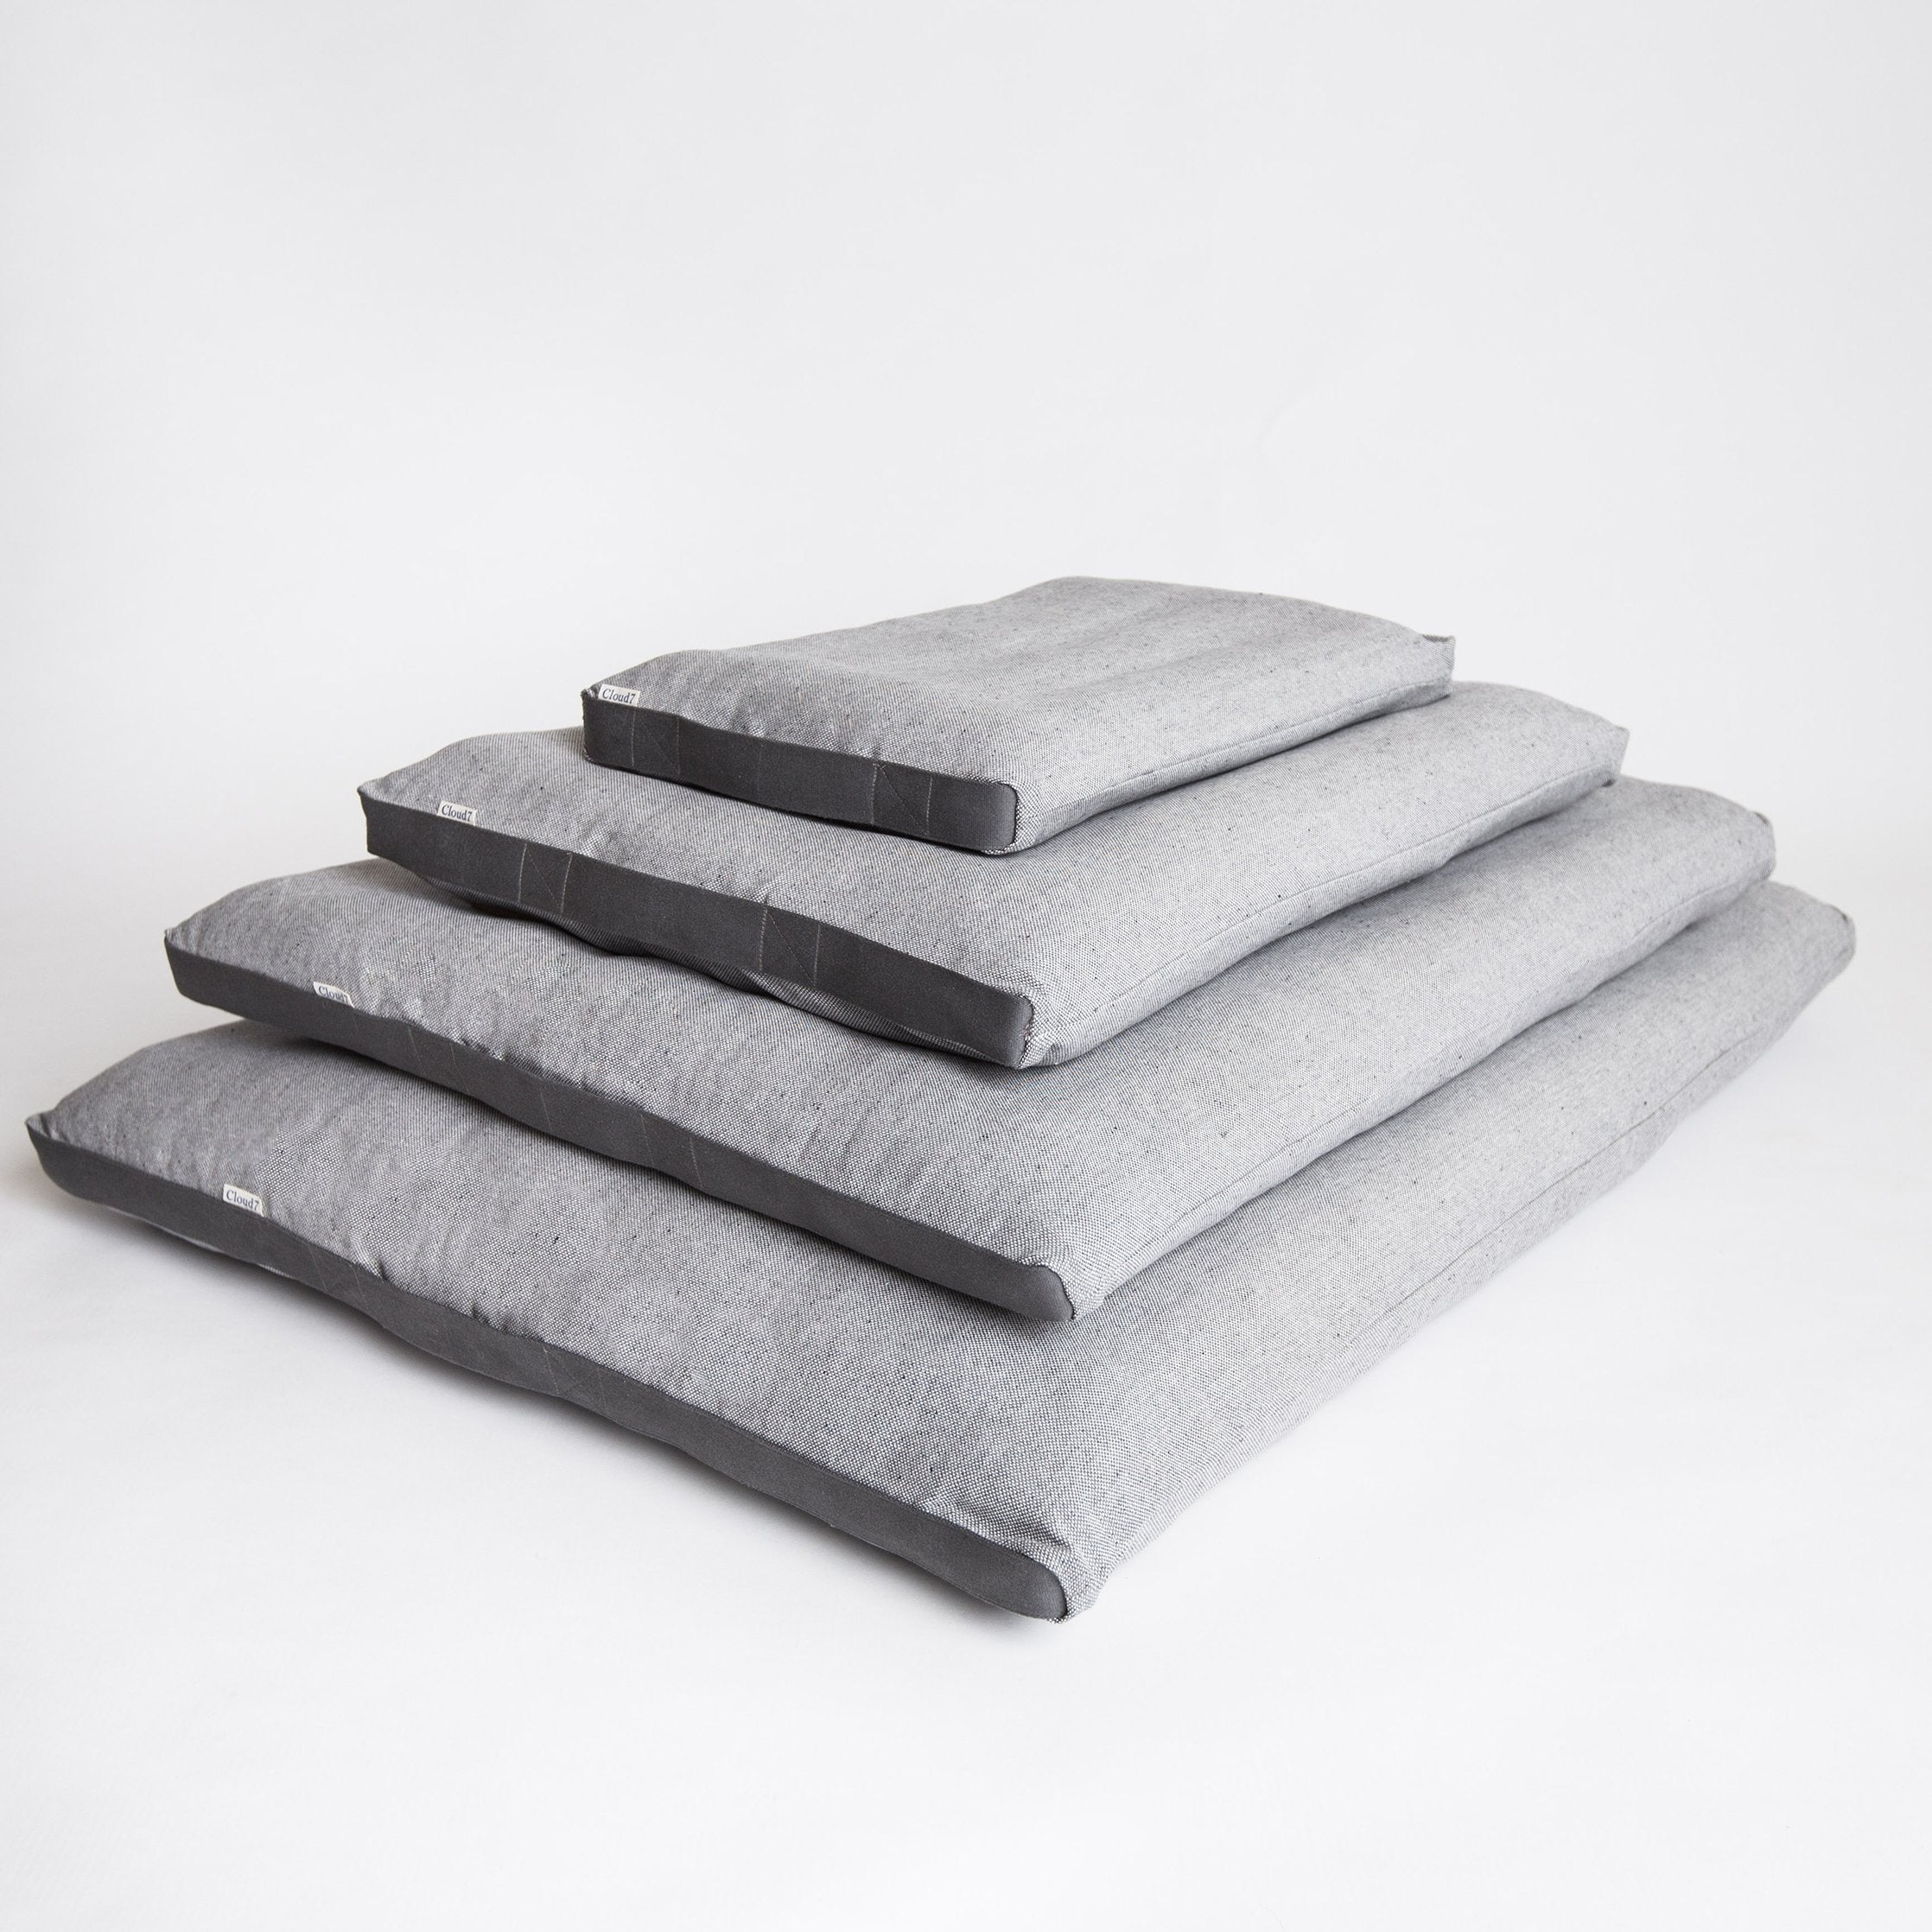 Cloud 7 Siesta Dog Bed - Tweed Grey